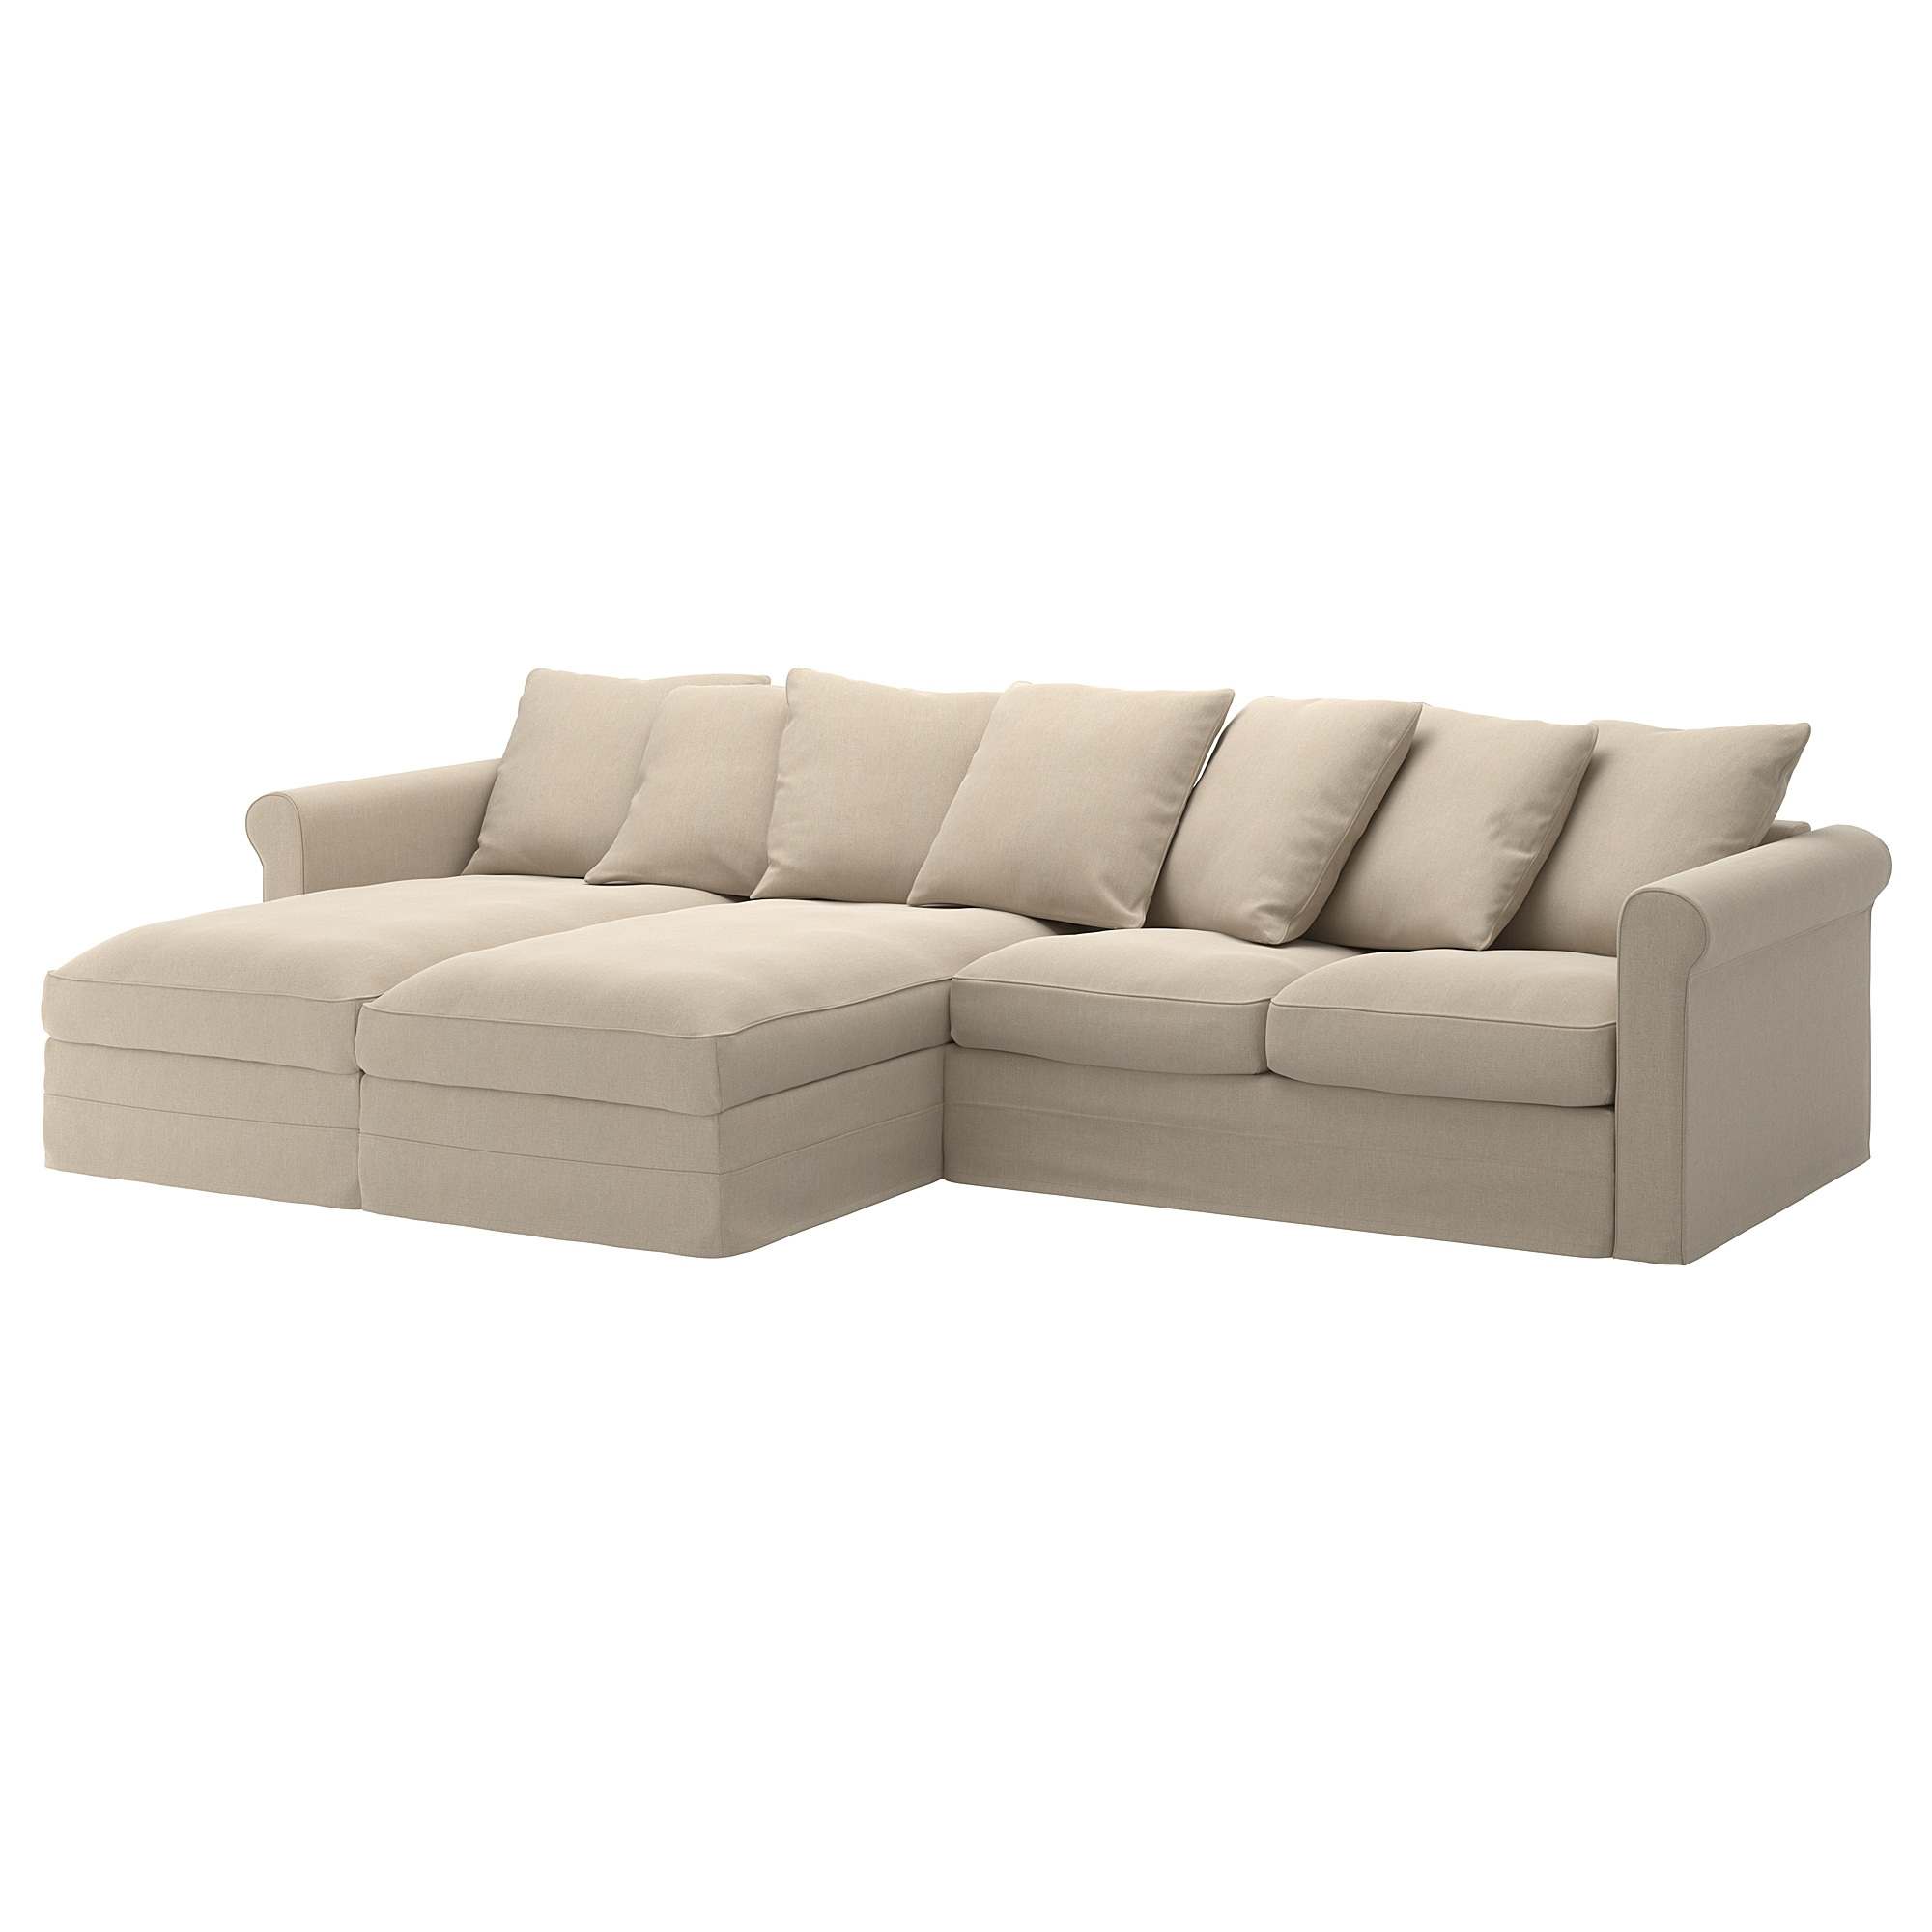 Modular Sofas & Sectional Sofas | Ikea Pertaining To 100X80 Sectional Sofas (Image 9 of 10)